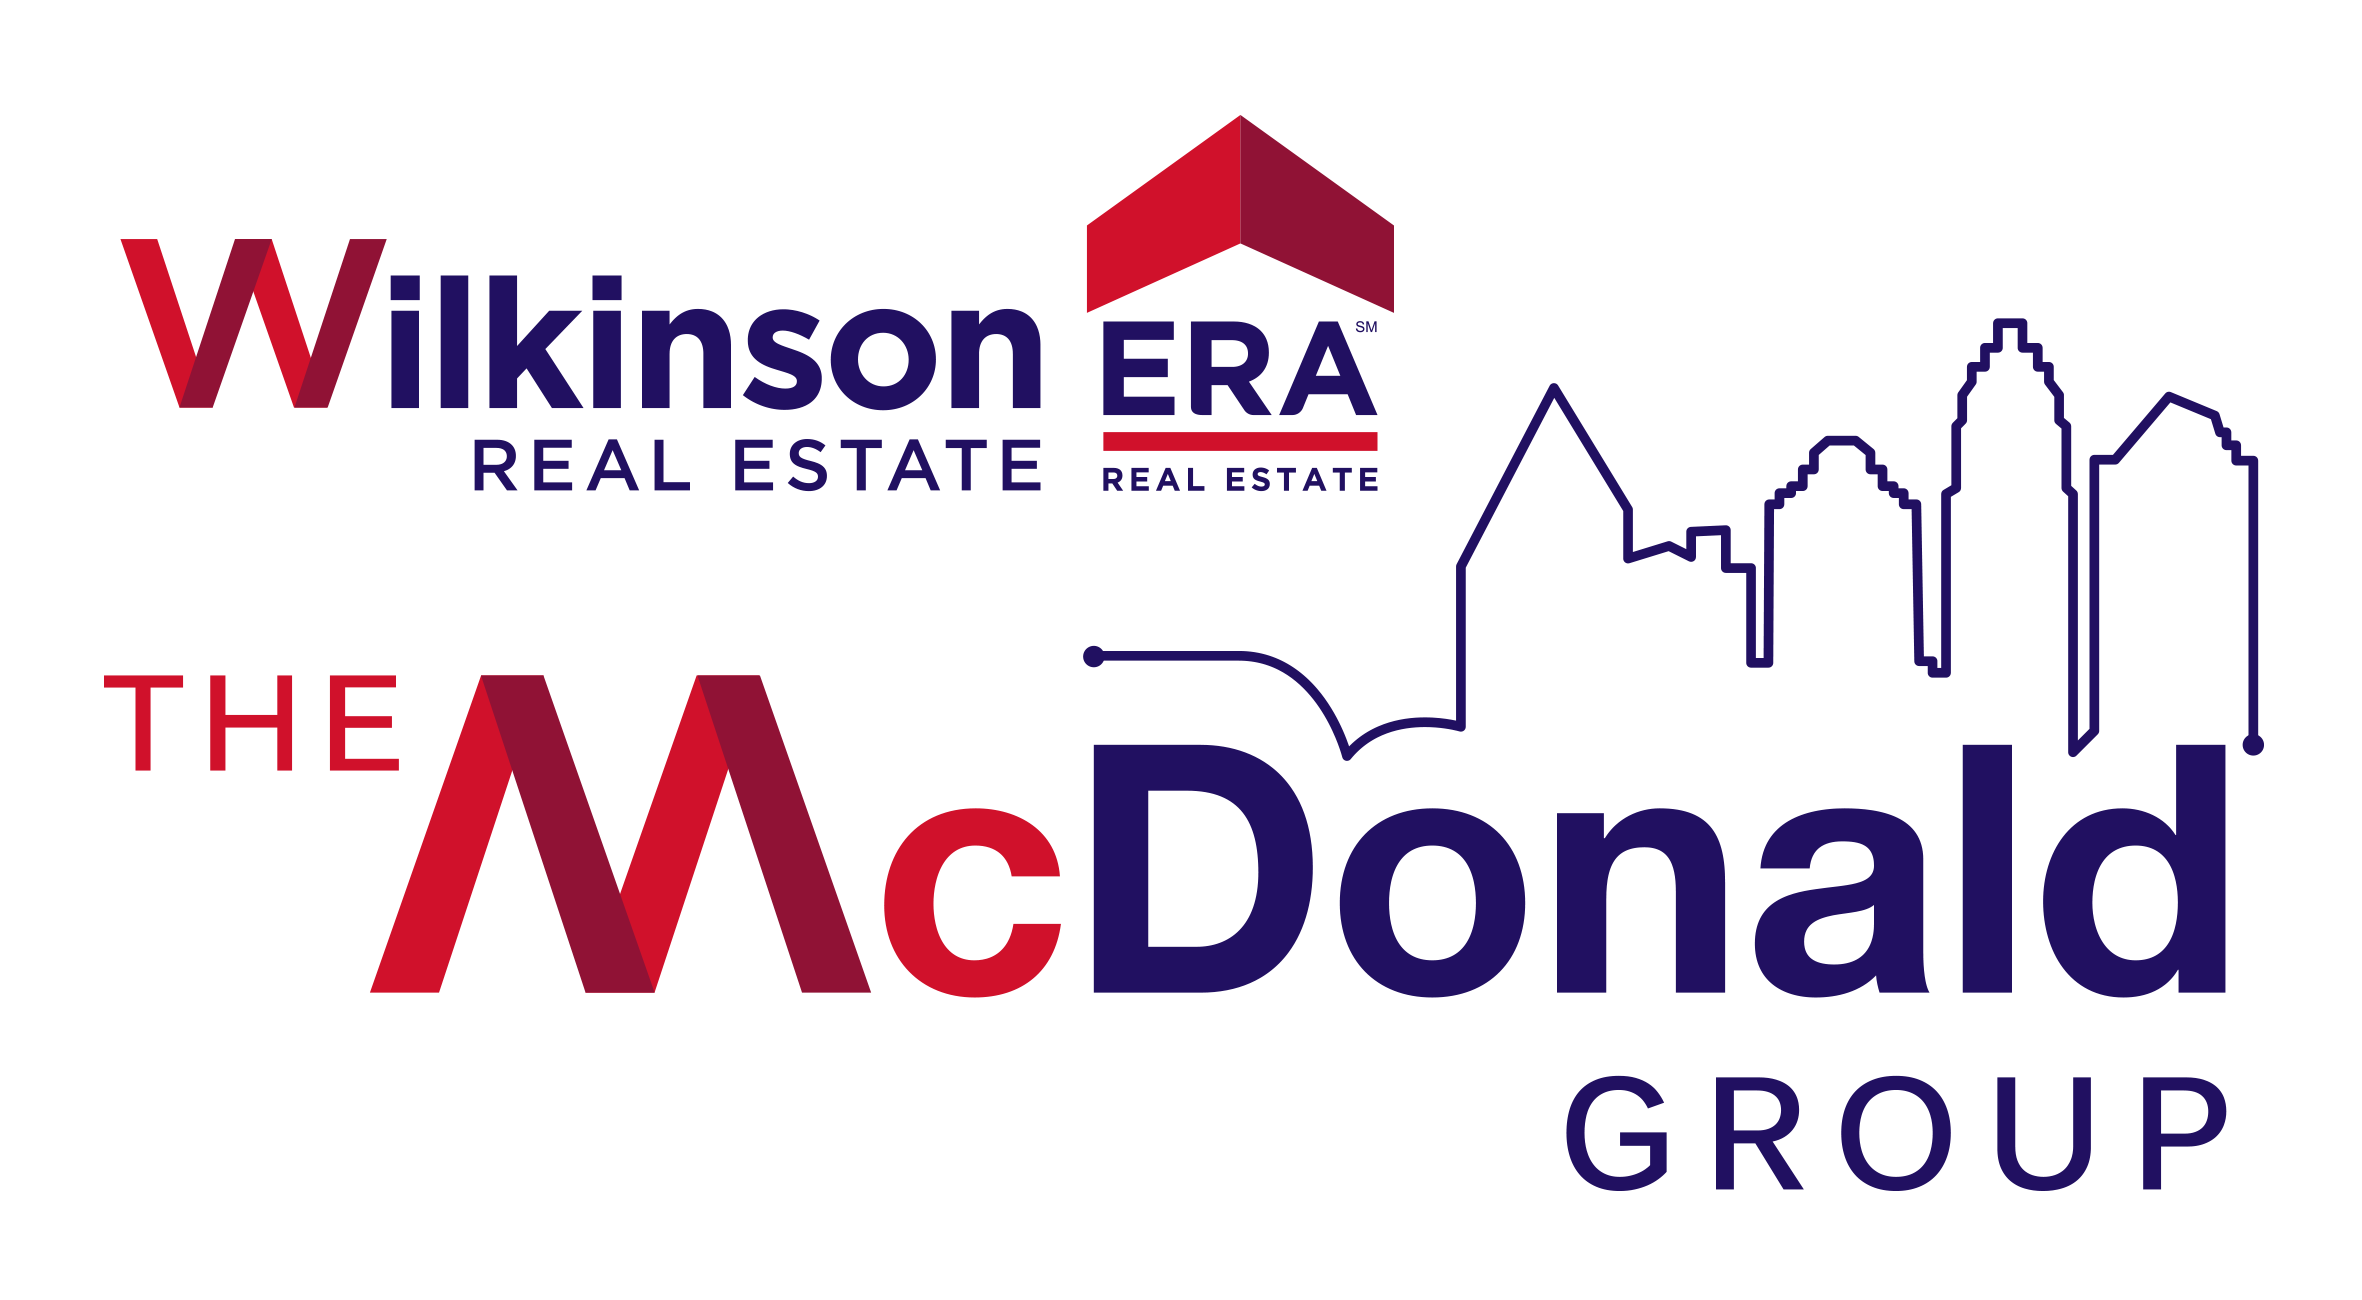 Top Realtors McDonald Group